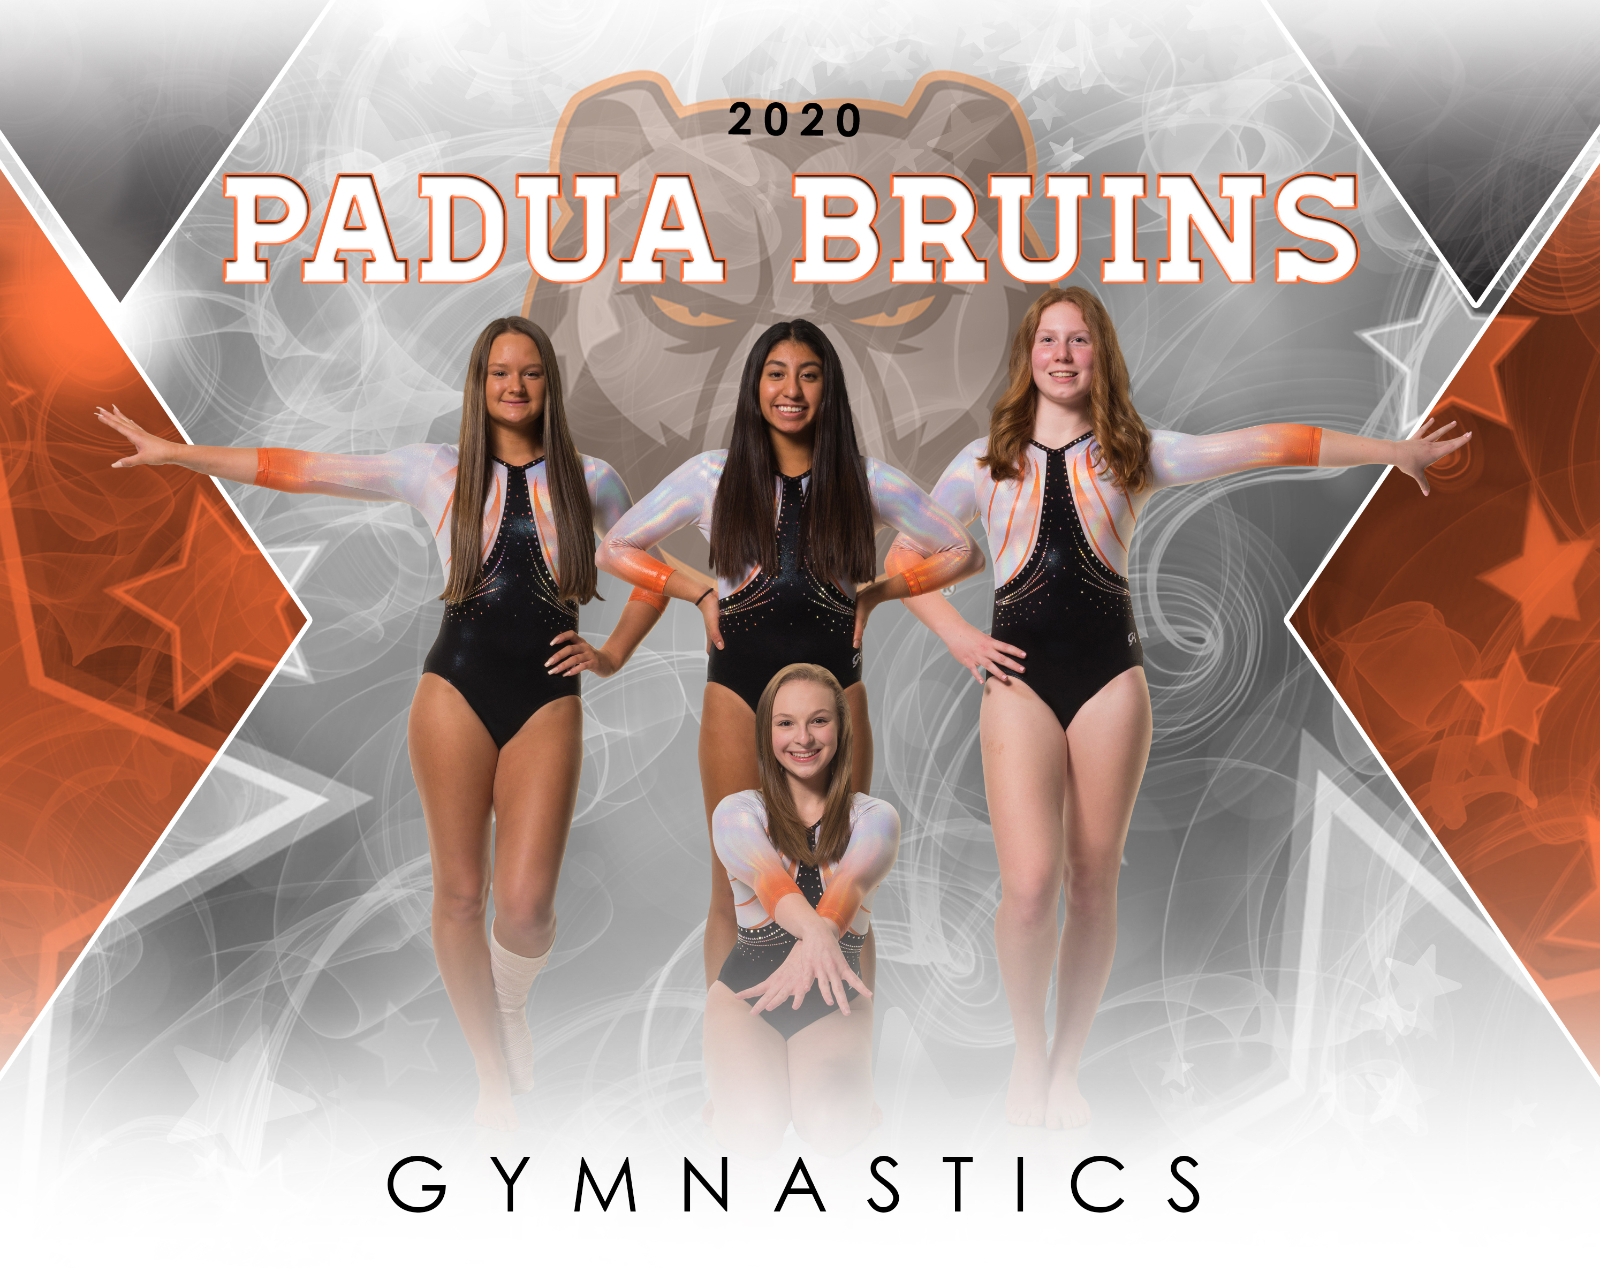 Lady Bruins Gymnasts fair well on MLK Day Meet